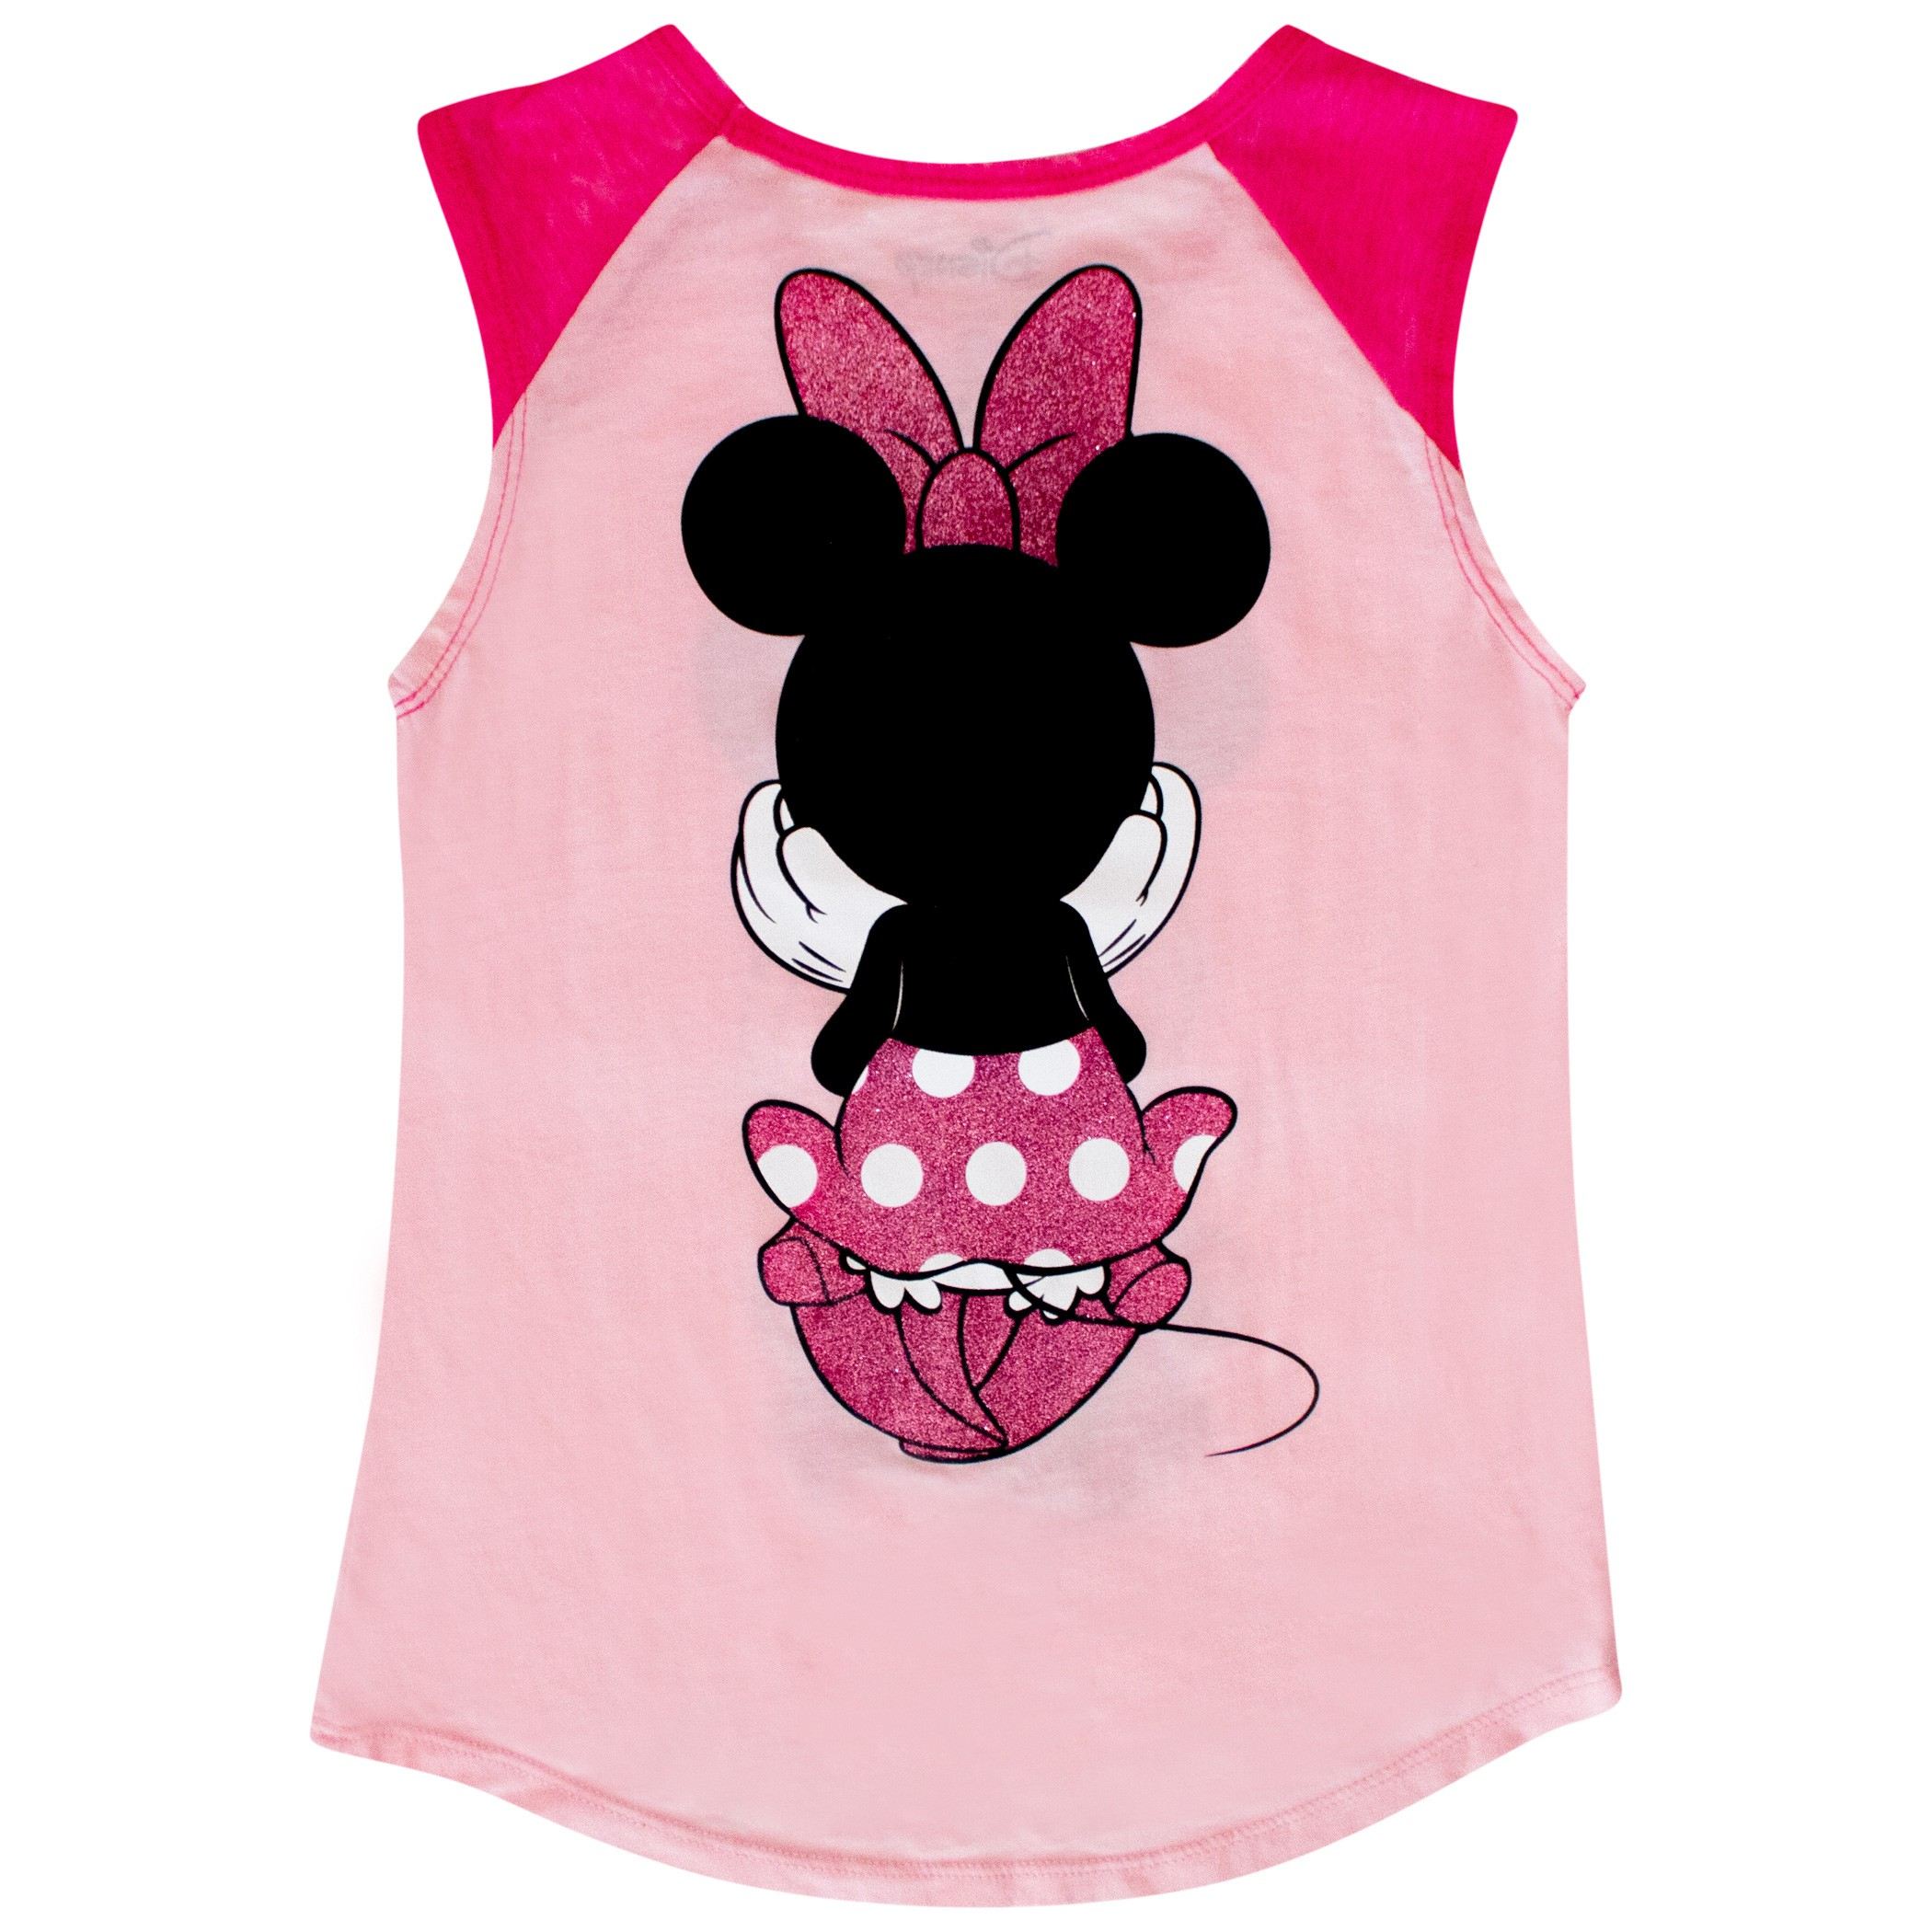 Minnie Mouse Pose Youth Tank Top